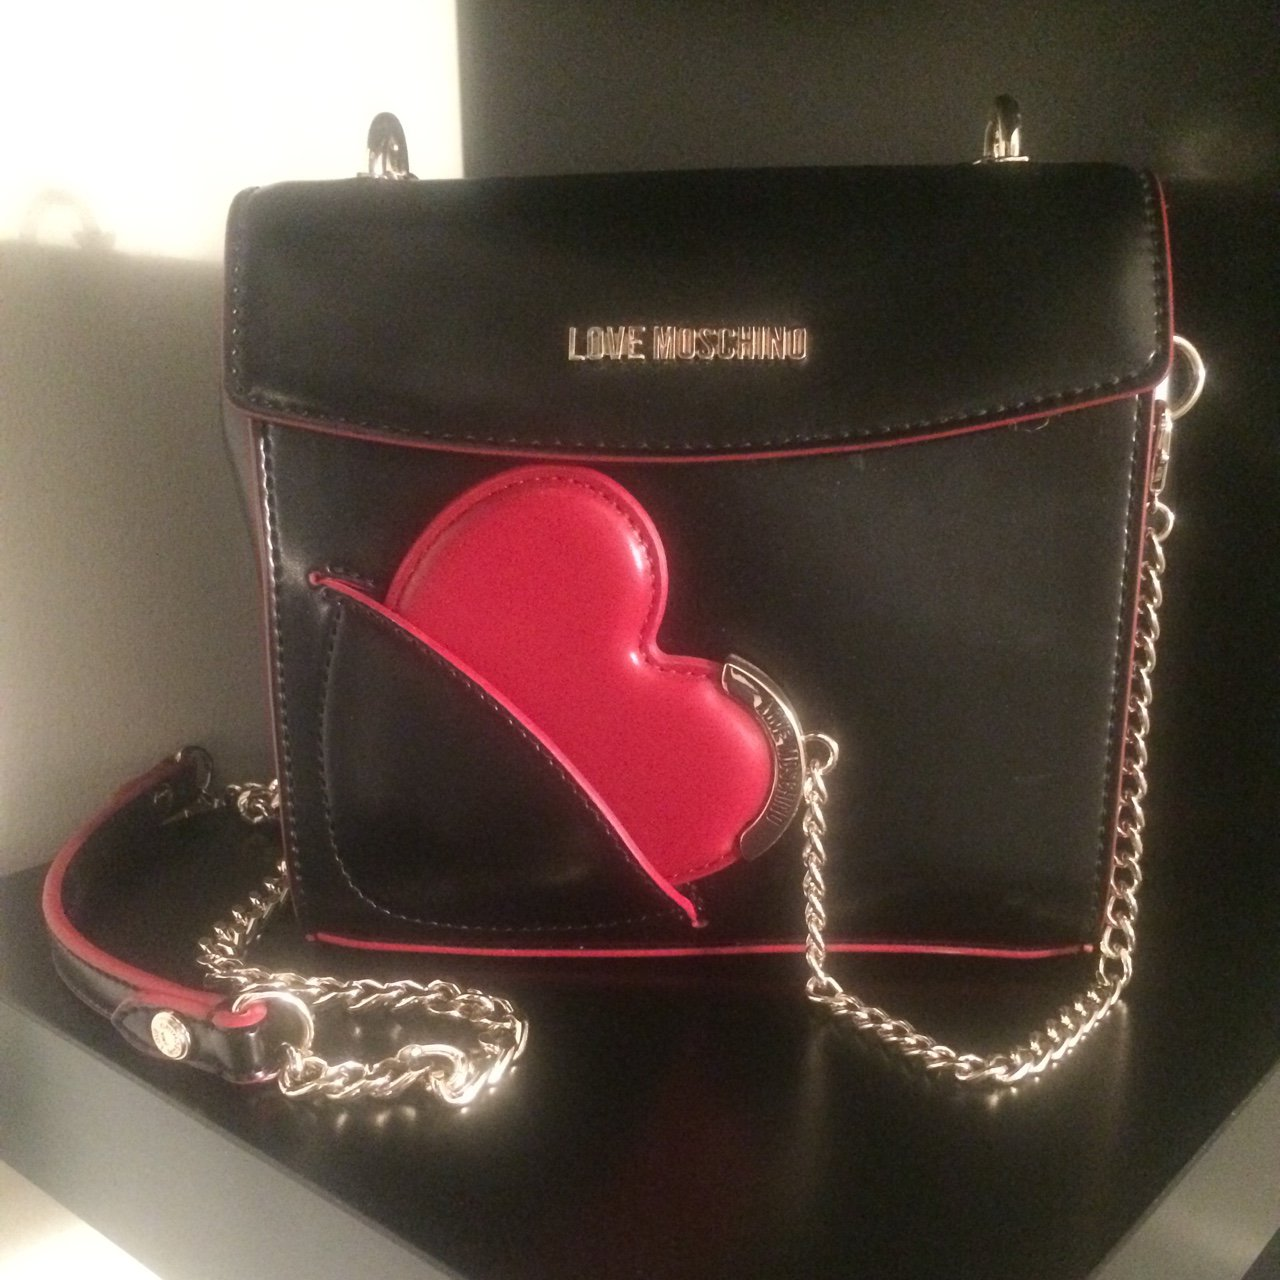 d62050141d8b0 Love Moschino bag with heart mirror. Never been used. Brand - Depop